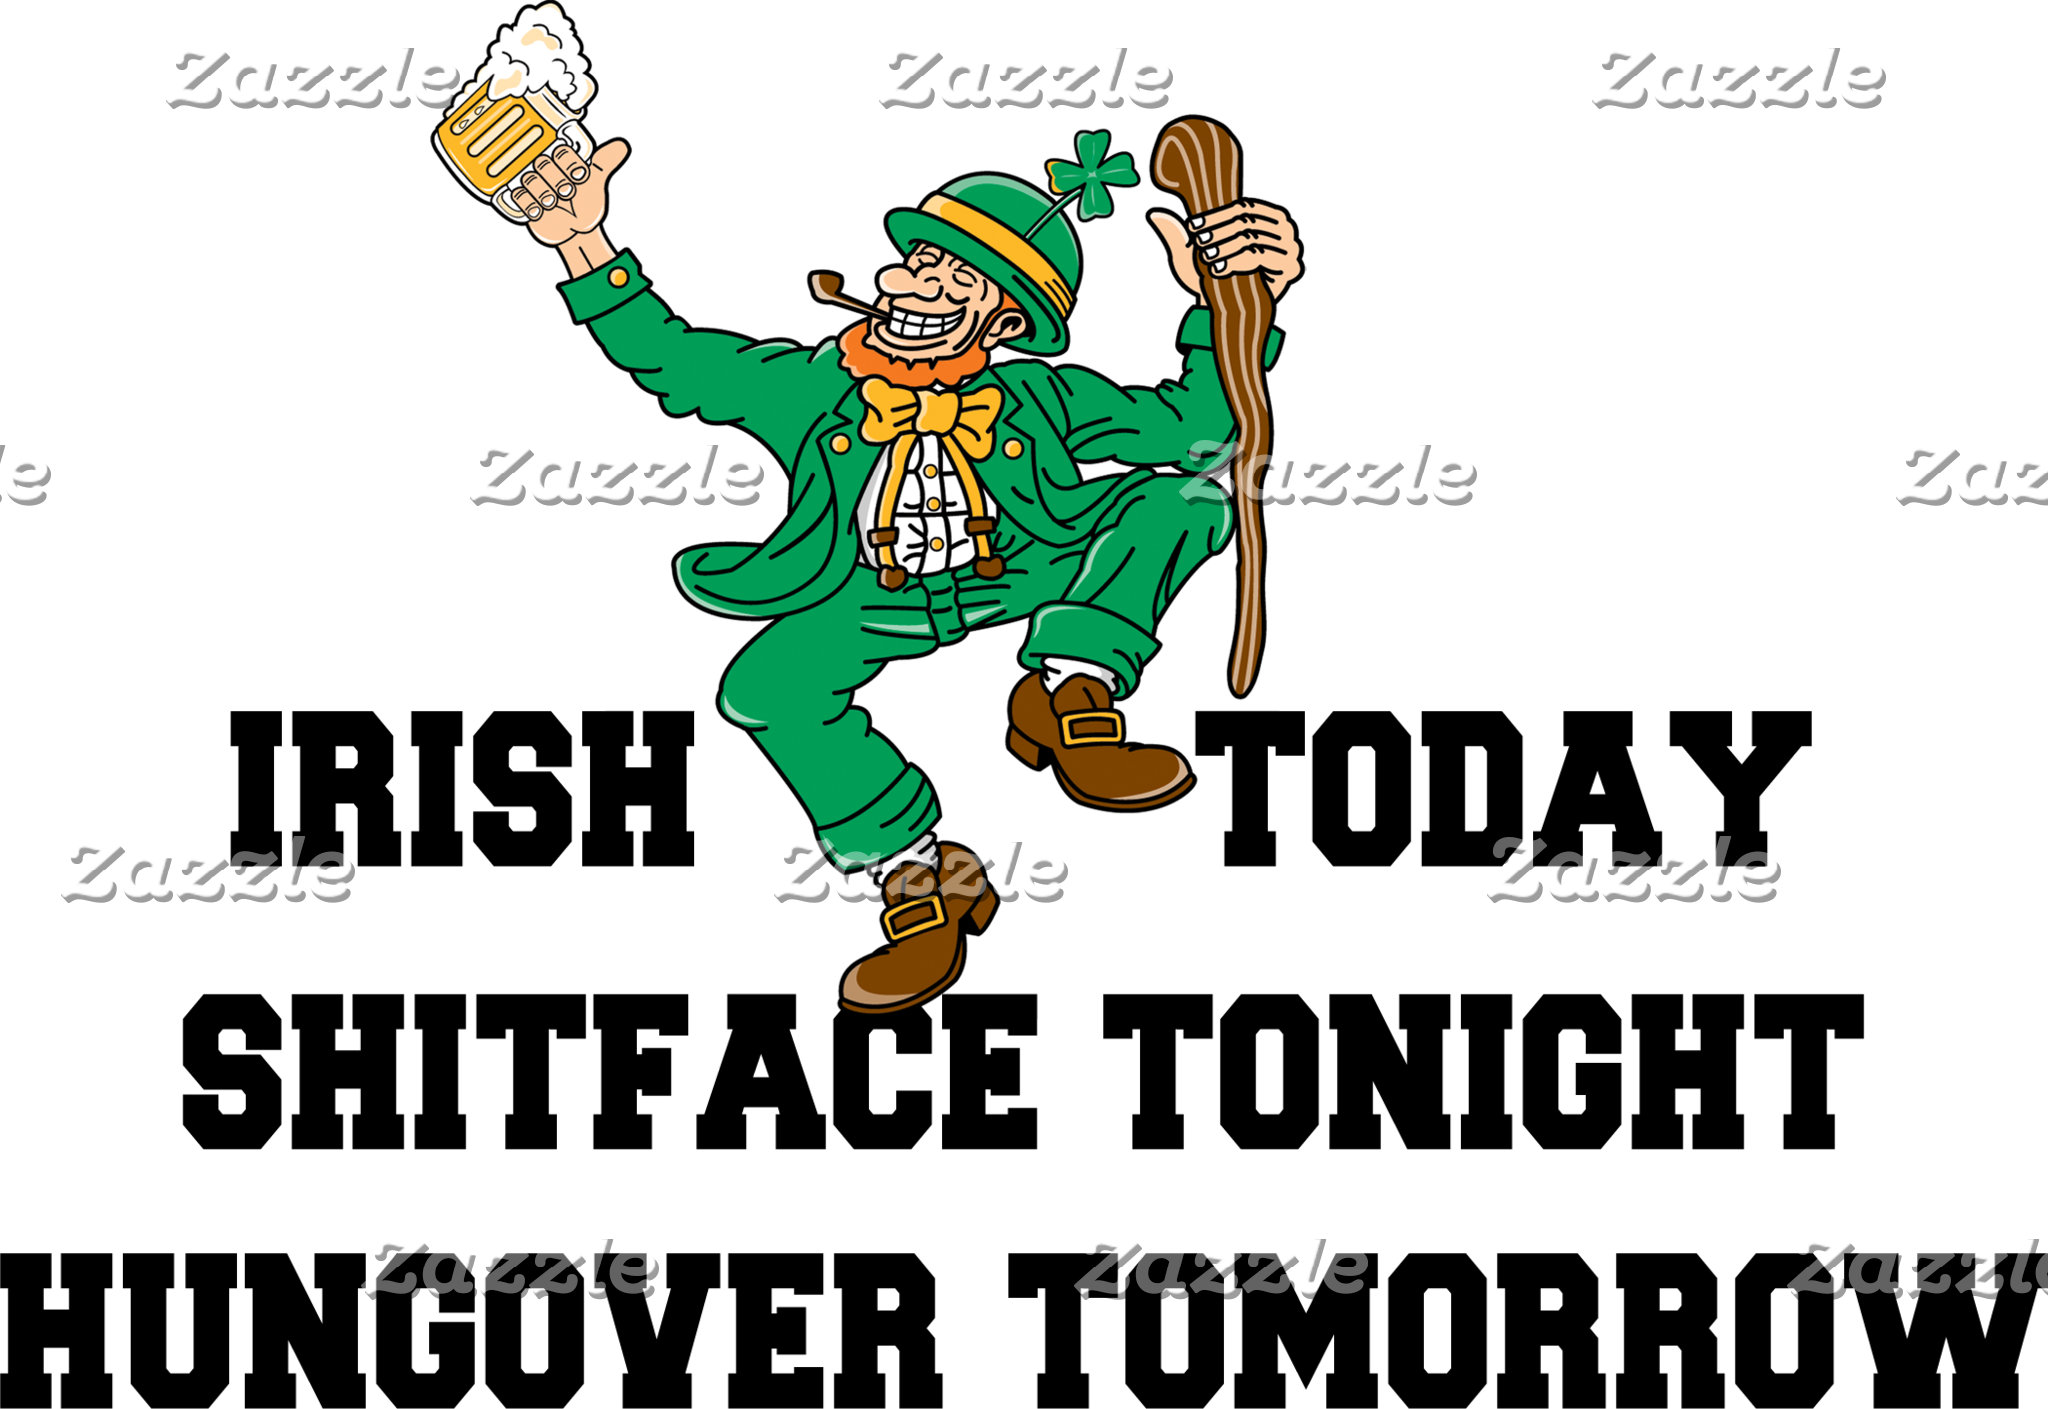 Funny Irish Today T-Shirts